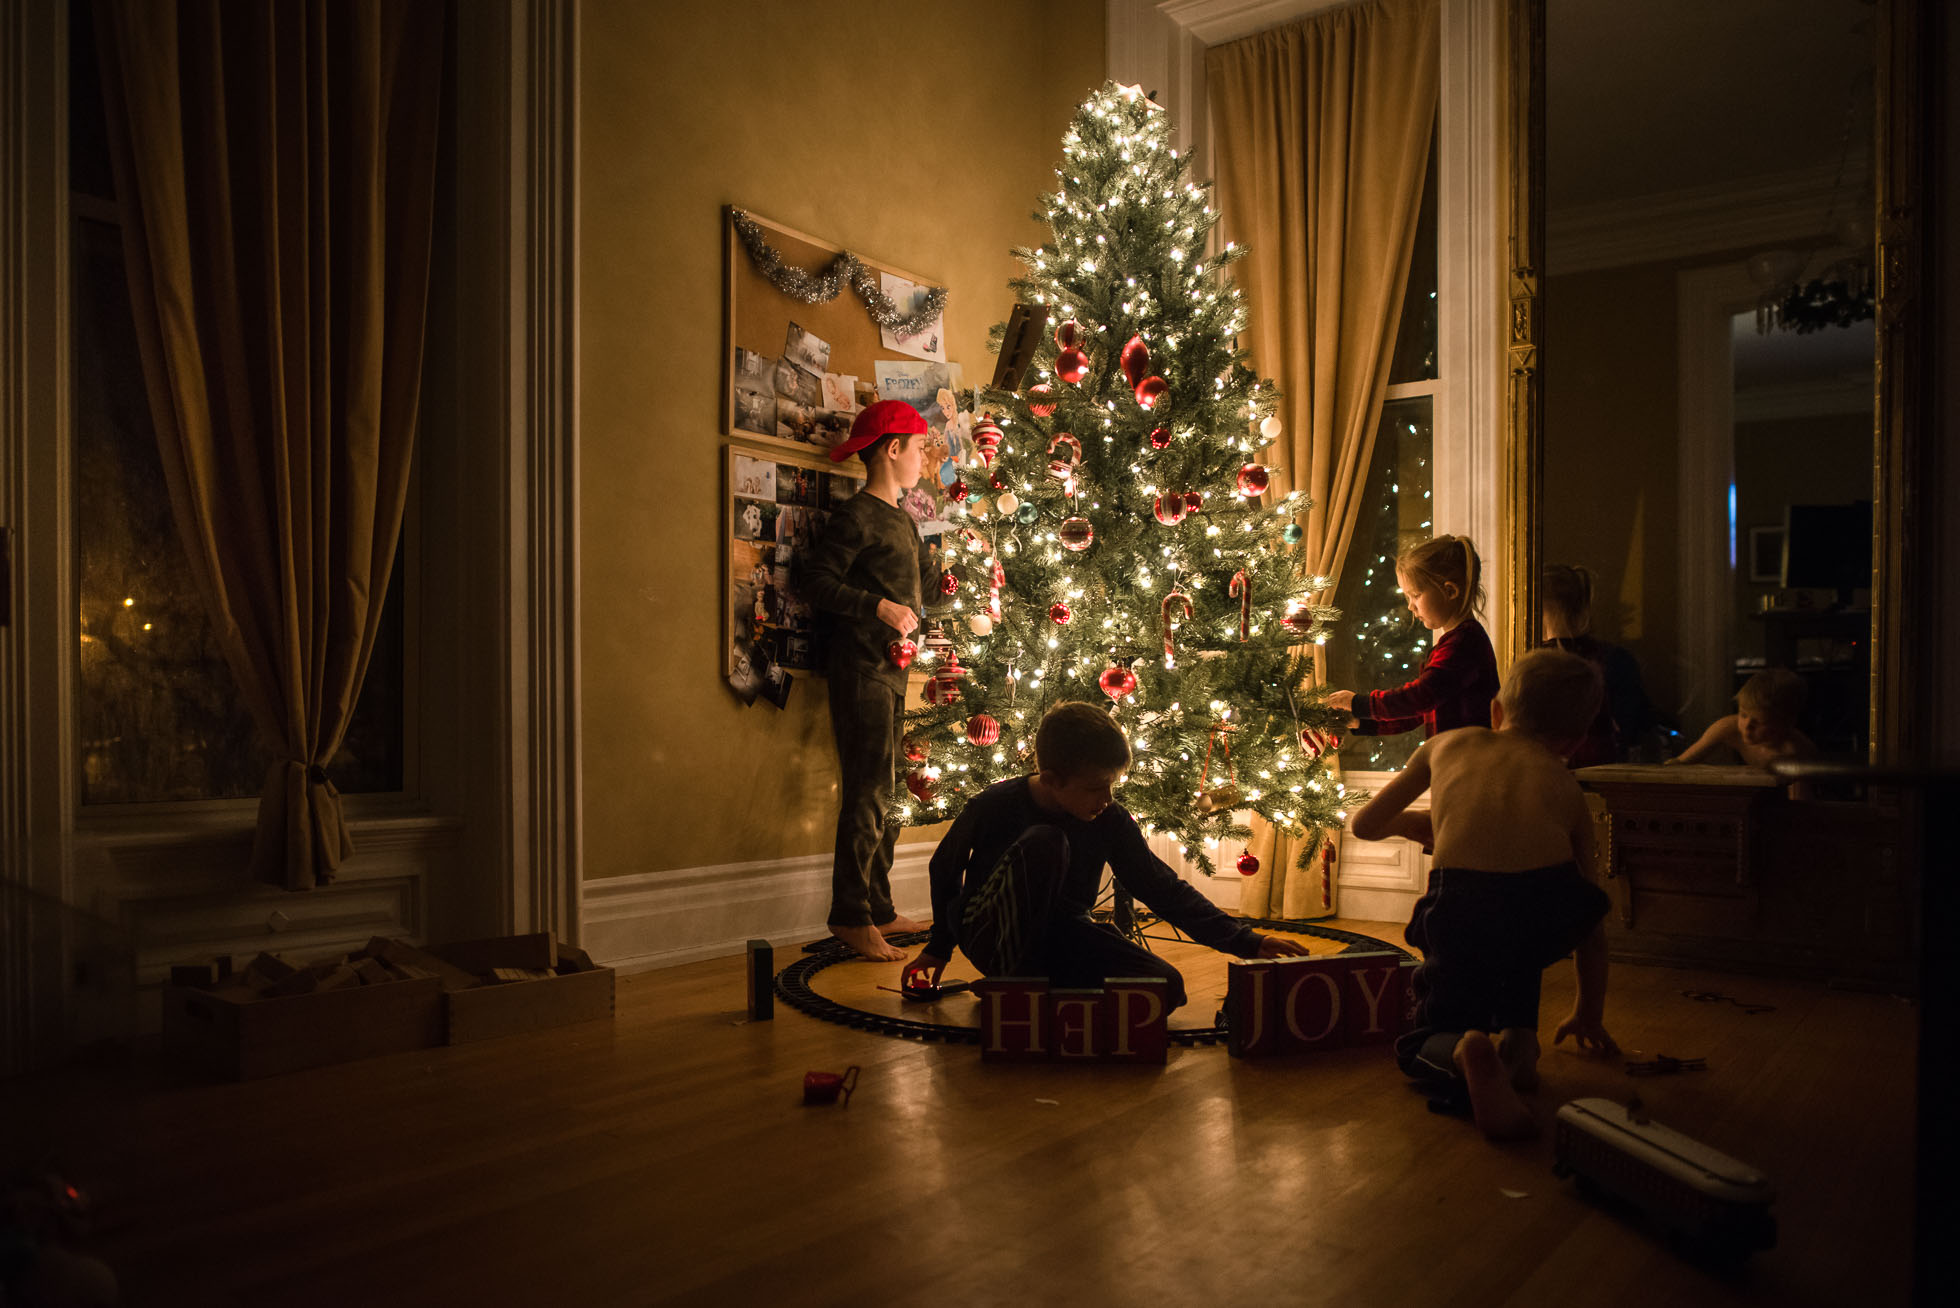 documentary-holiday-lifestyle-photo-of-four-children-decorating-a-classic-american-christmas-tree-in-low-light-by-sarah-wilkerson-3816